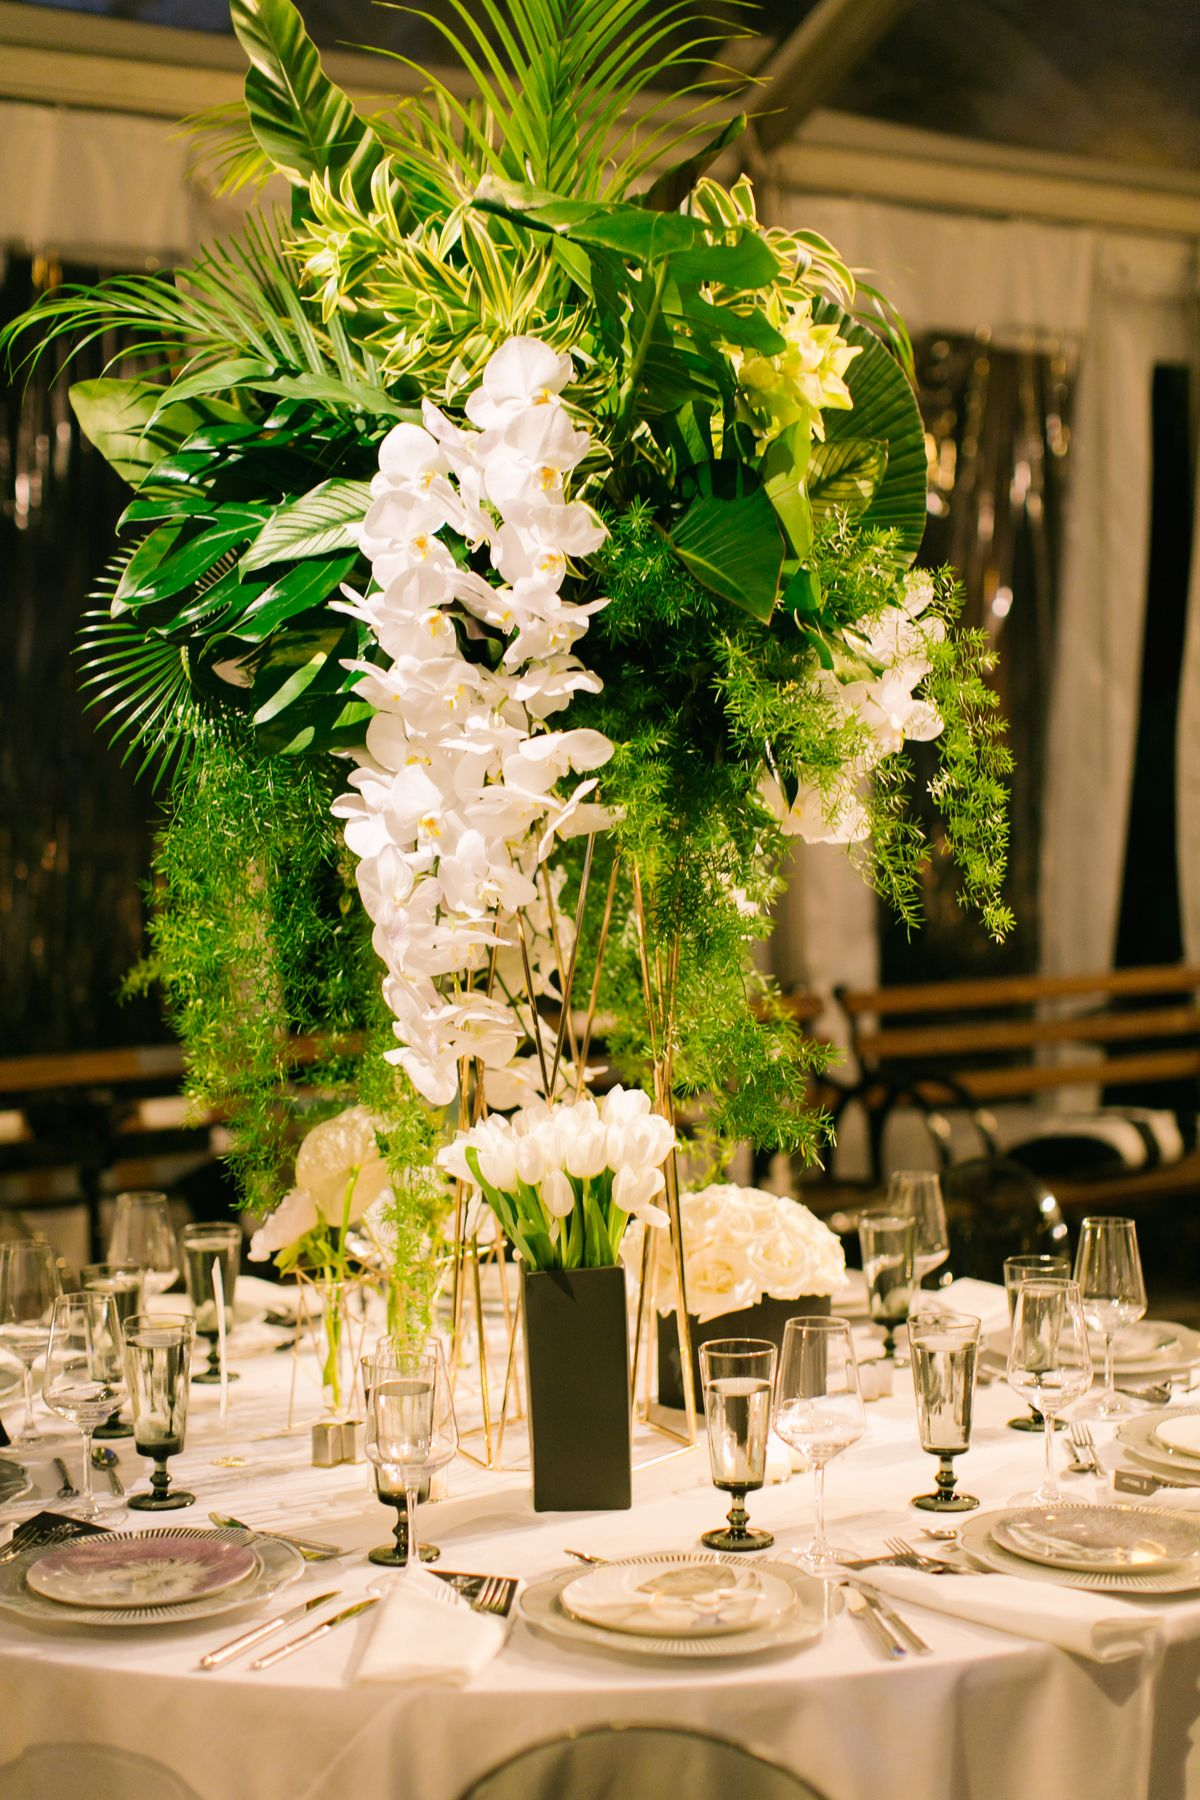 A Votre Service Events Wedding Planner & Florist in NYC